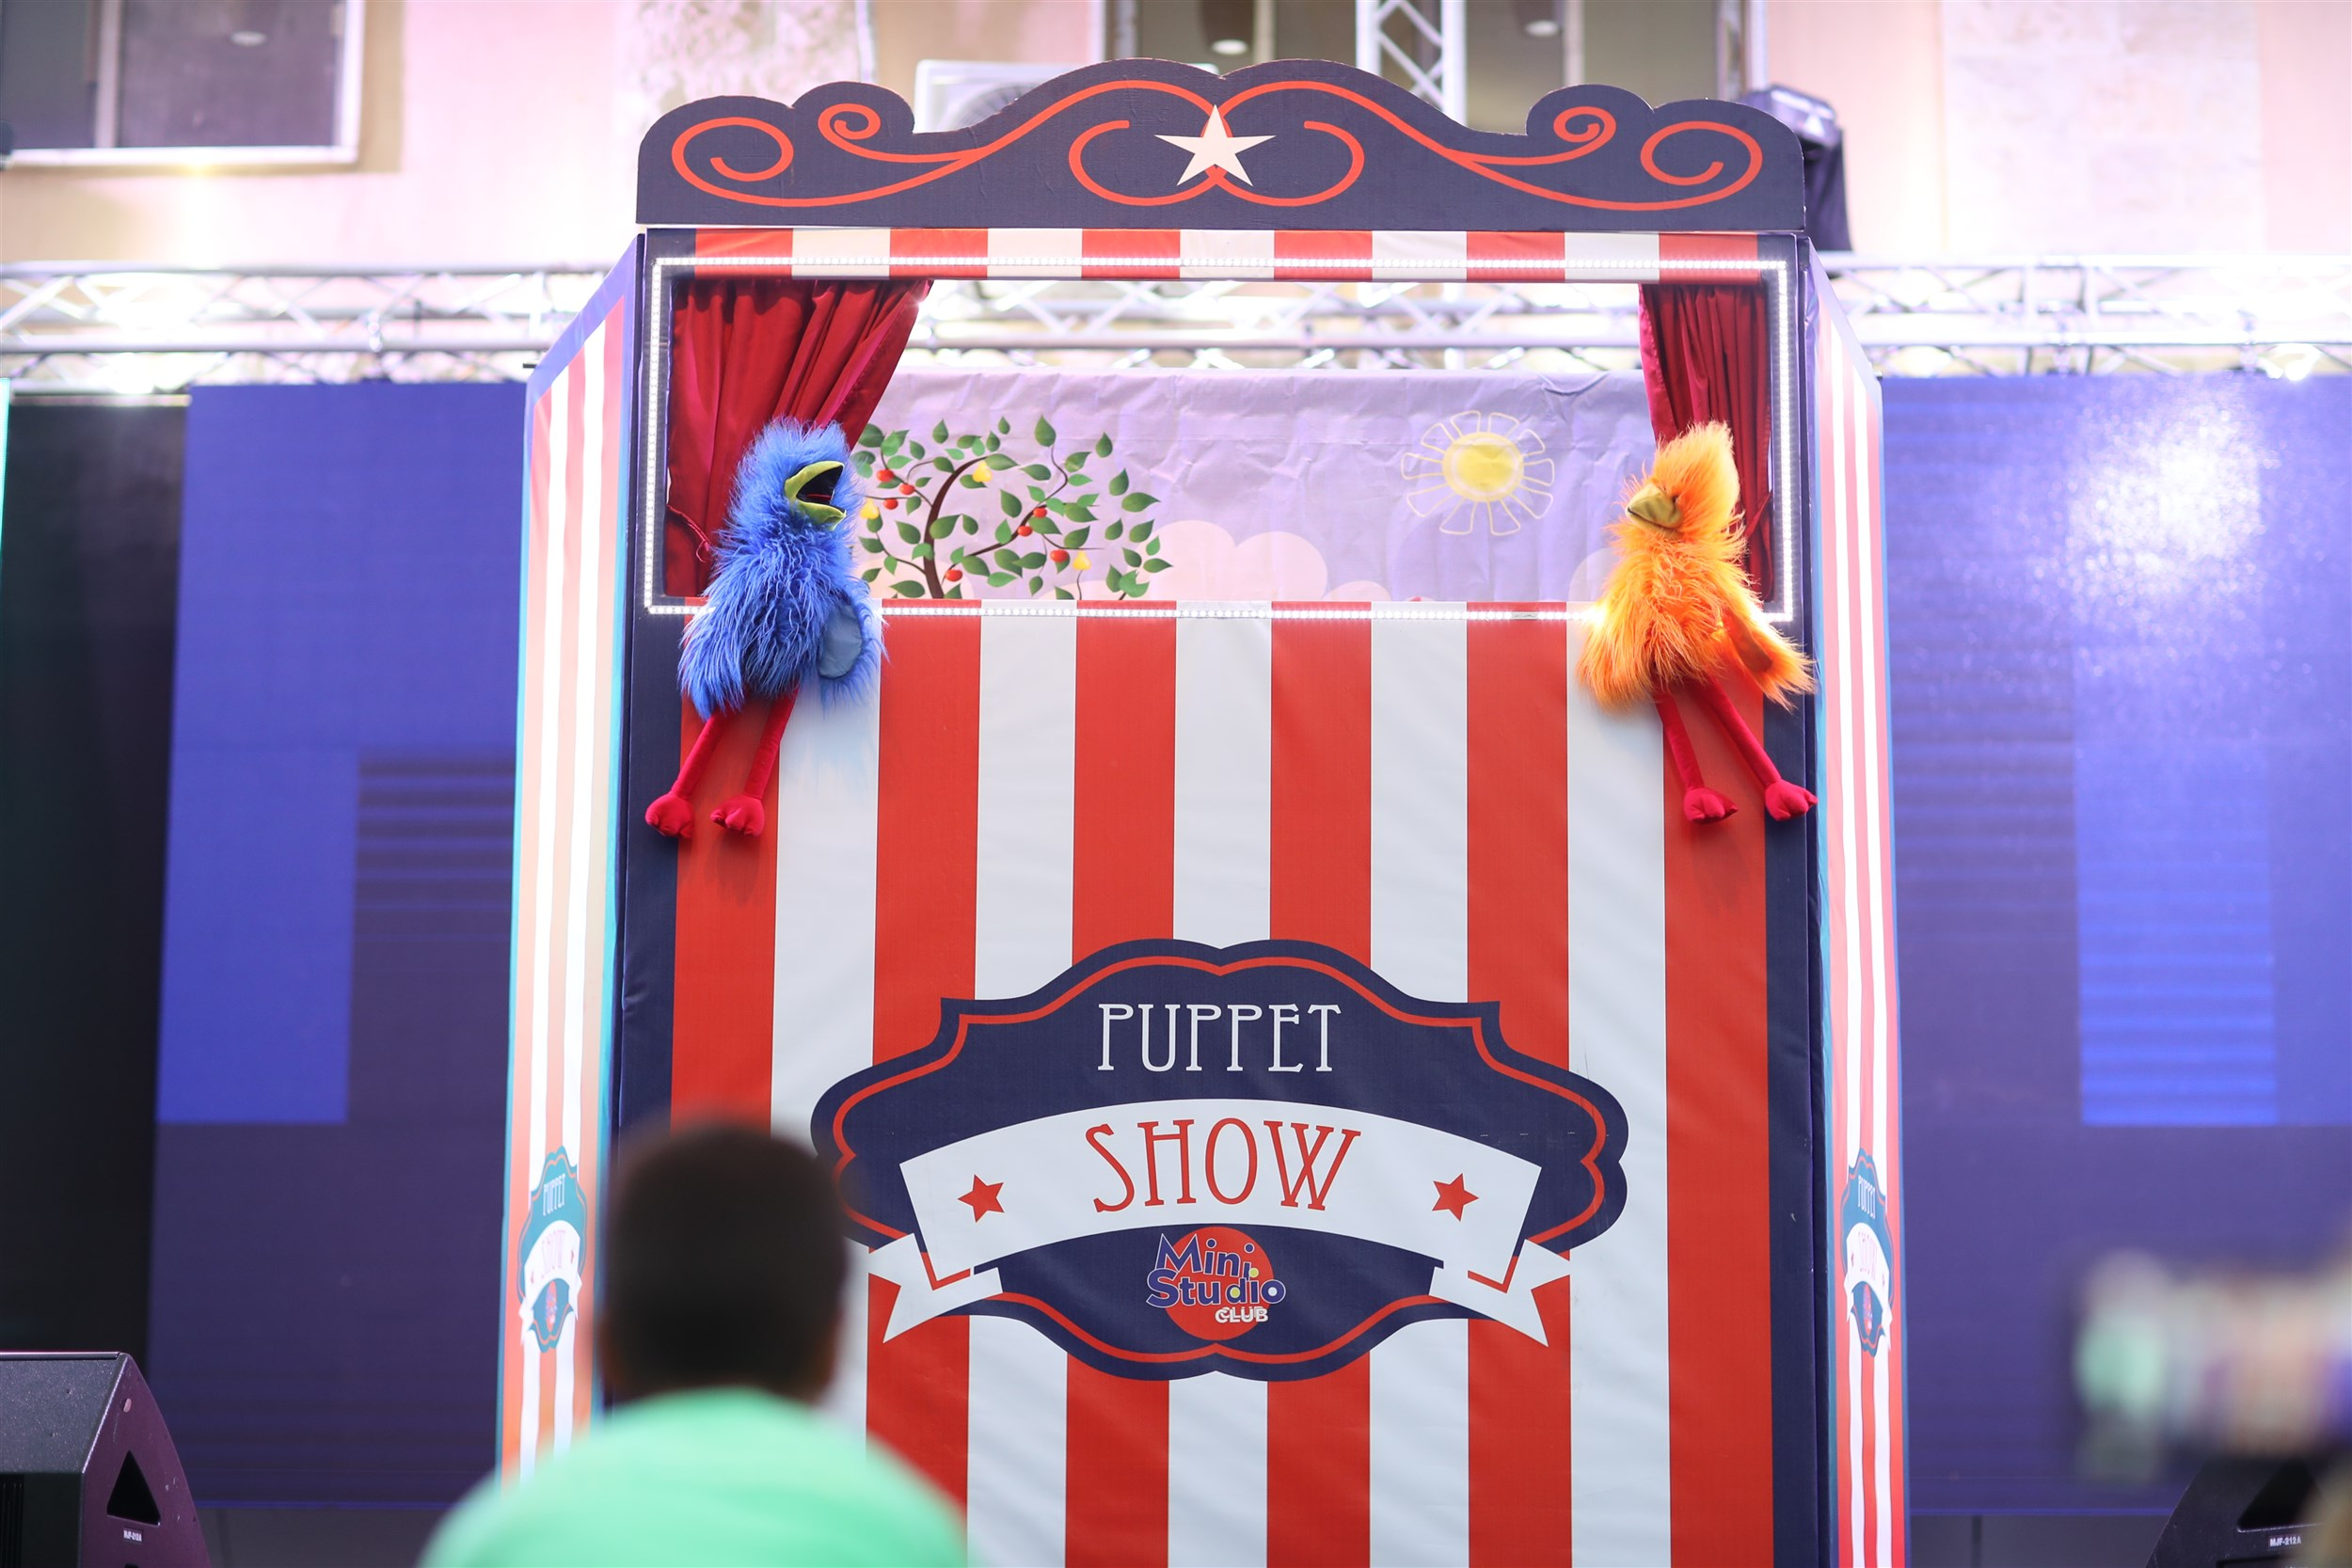 and of course everyone's favorite the puppet show